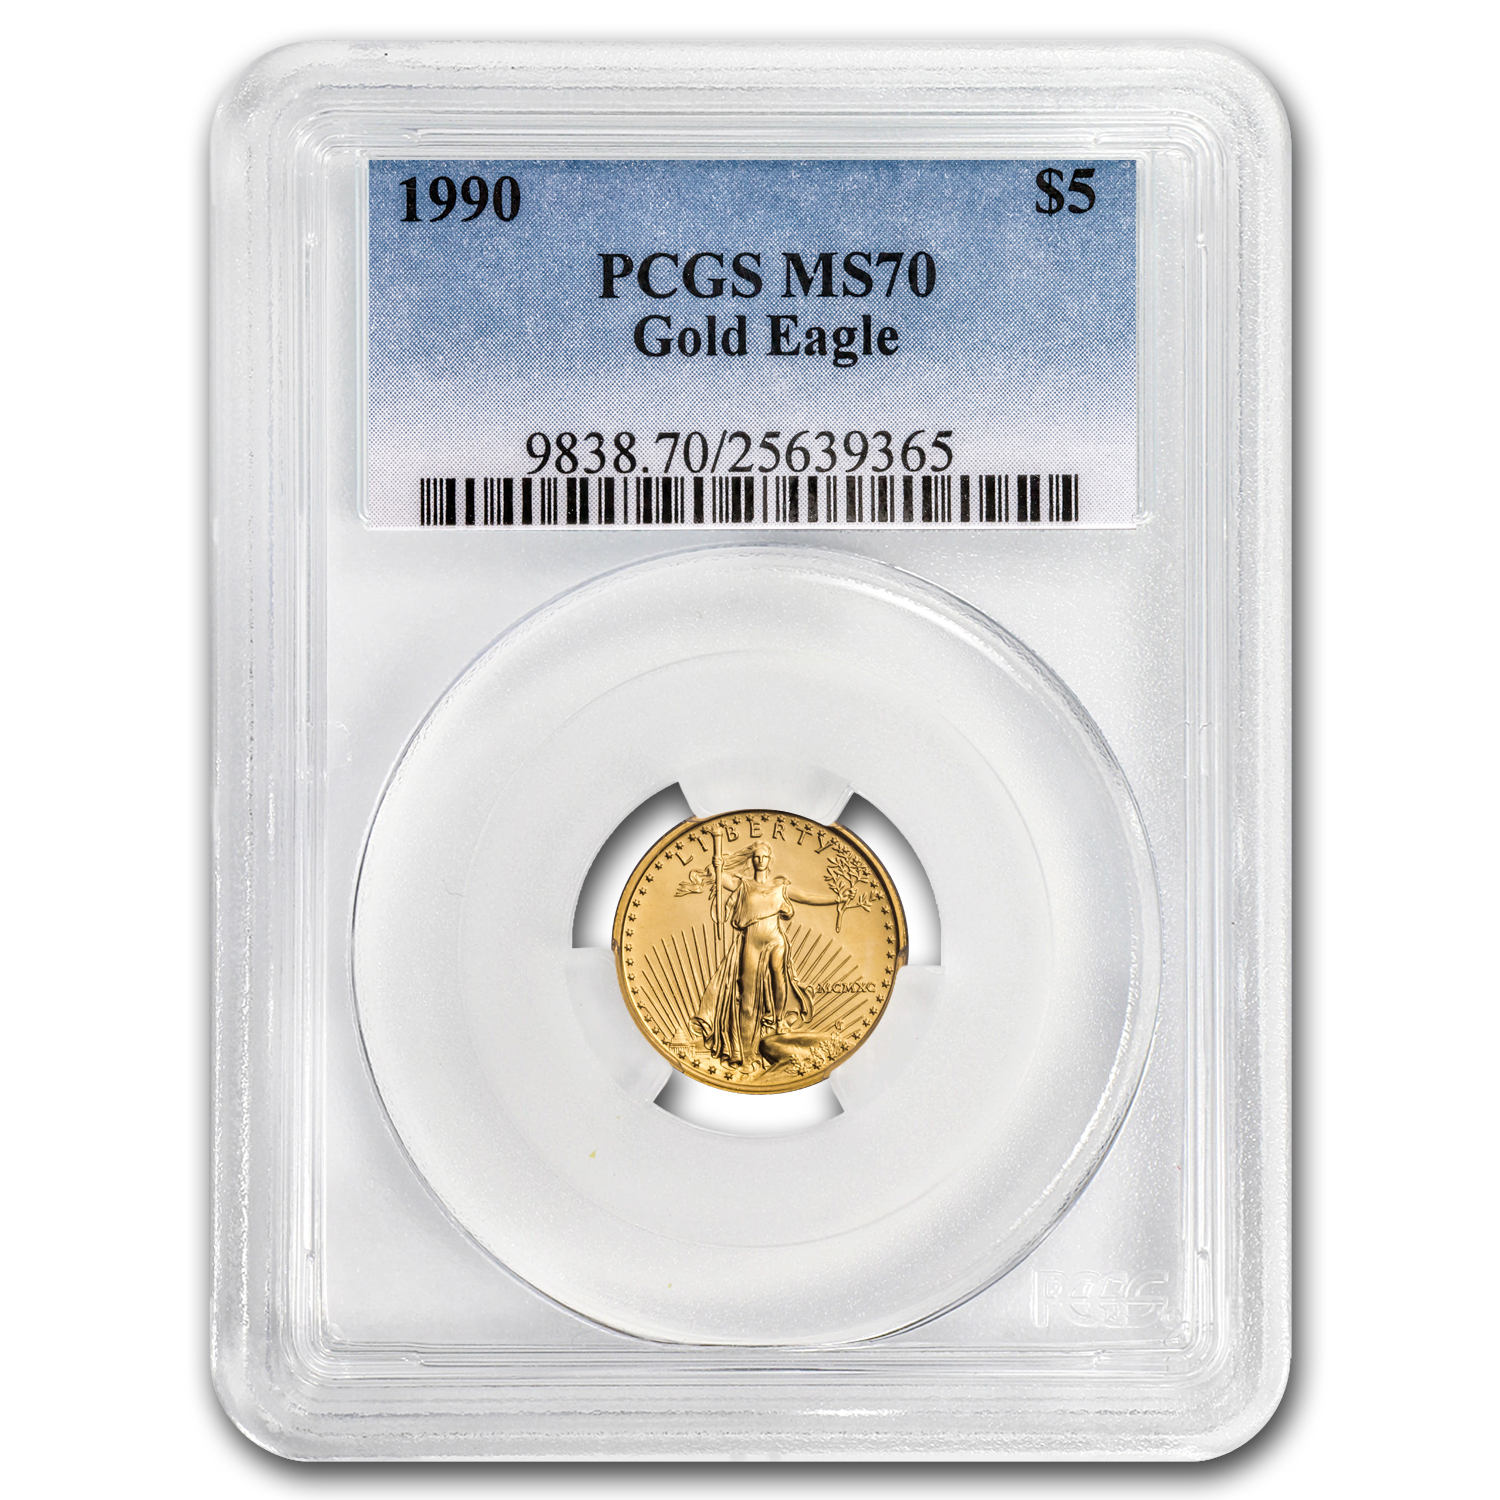 1990 1/10 oz Gold American Eagle MS-70 PCGS (Registry Set)